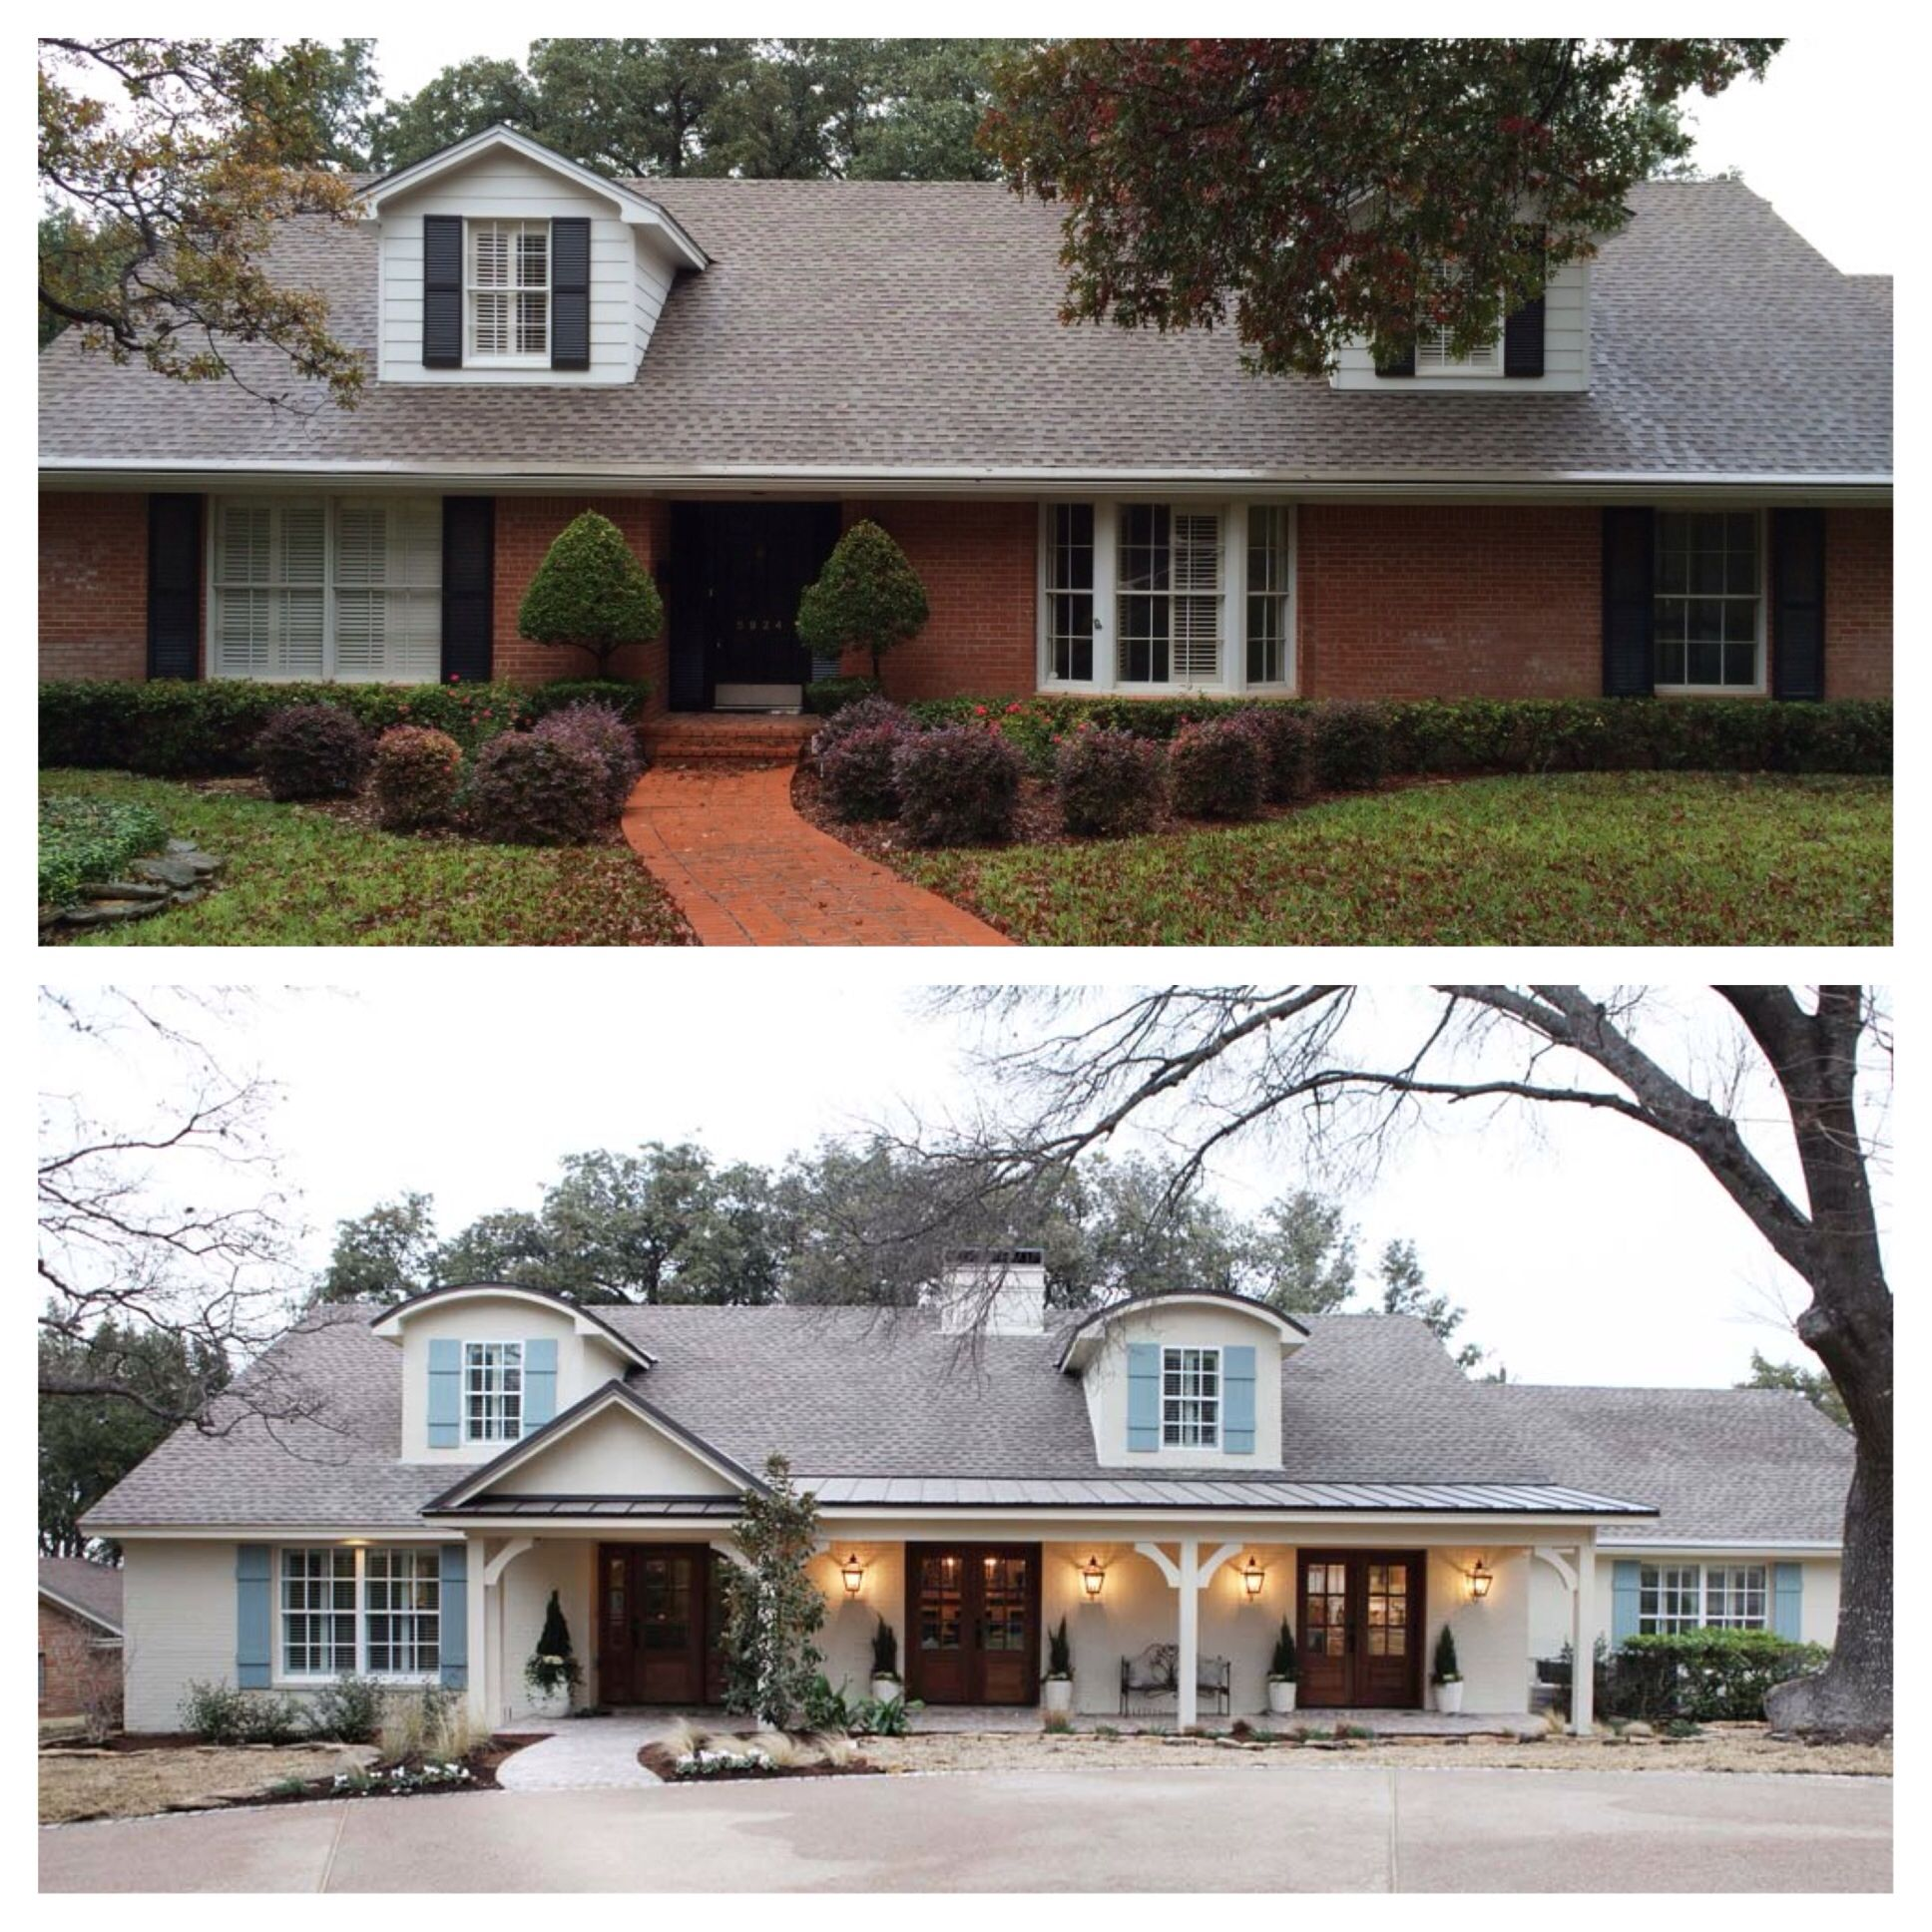 How To Transform A Tired Red Brick Boring Ranch Home Exterior